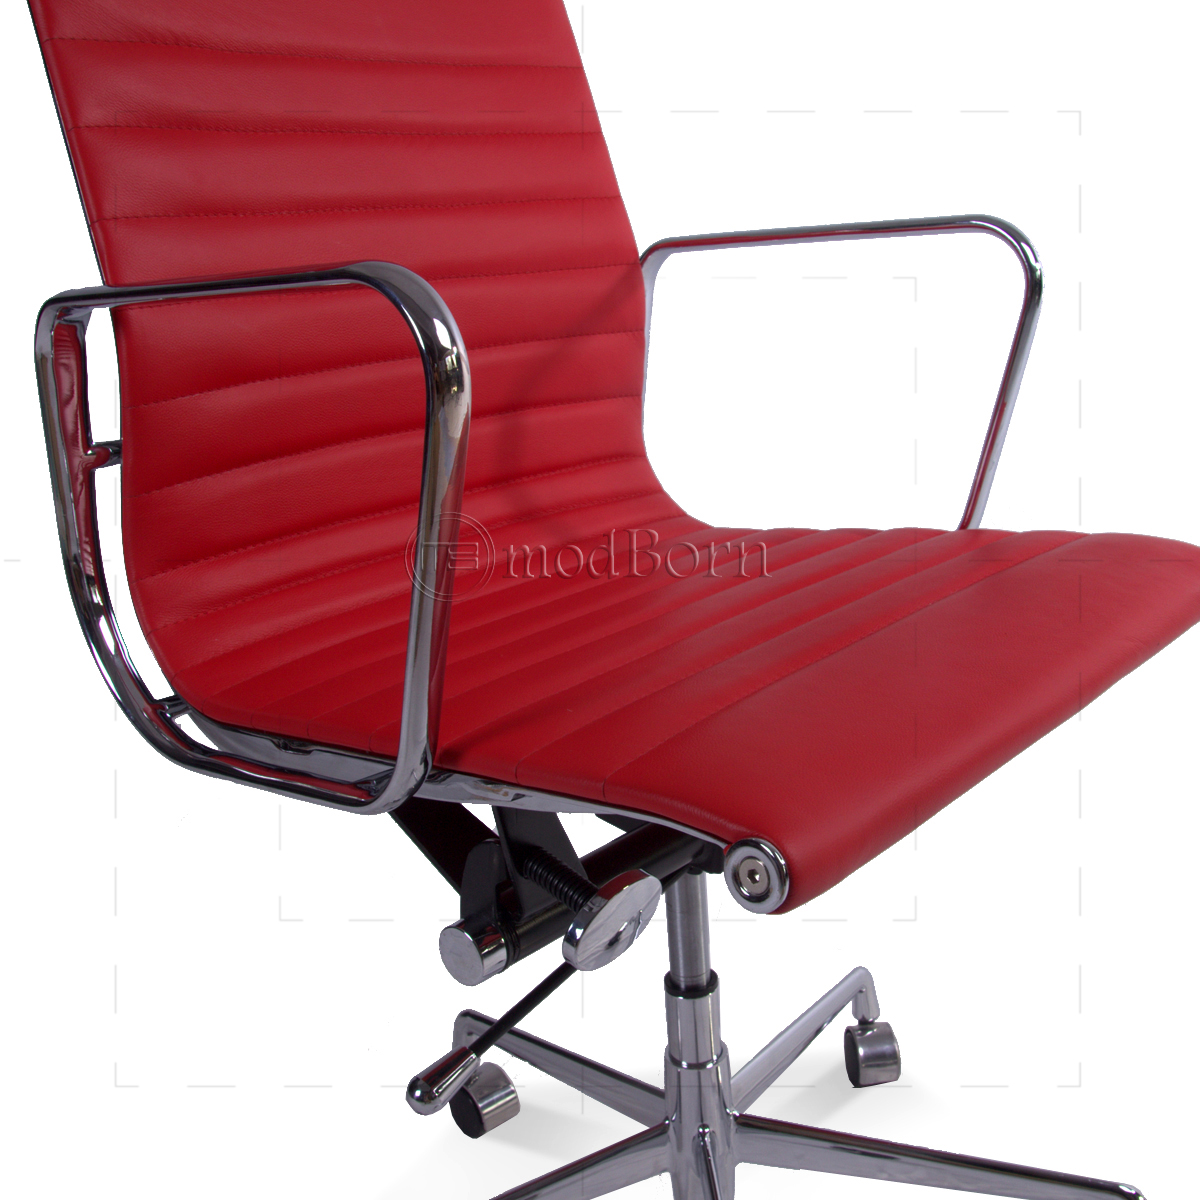 EA117 Eames Style Office Chair Low Back Ribbed Red Leather  : eames officechair lowback red closeup 1200x1200 from www.modborn.com size 1200 x 1200 jpeg 716kB